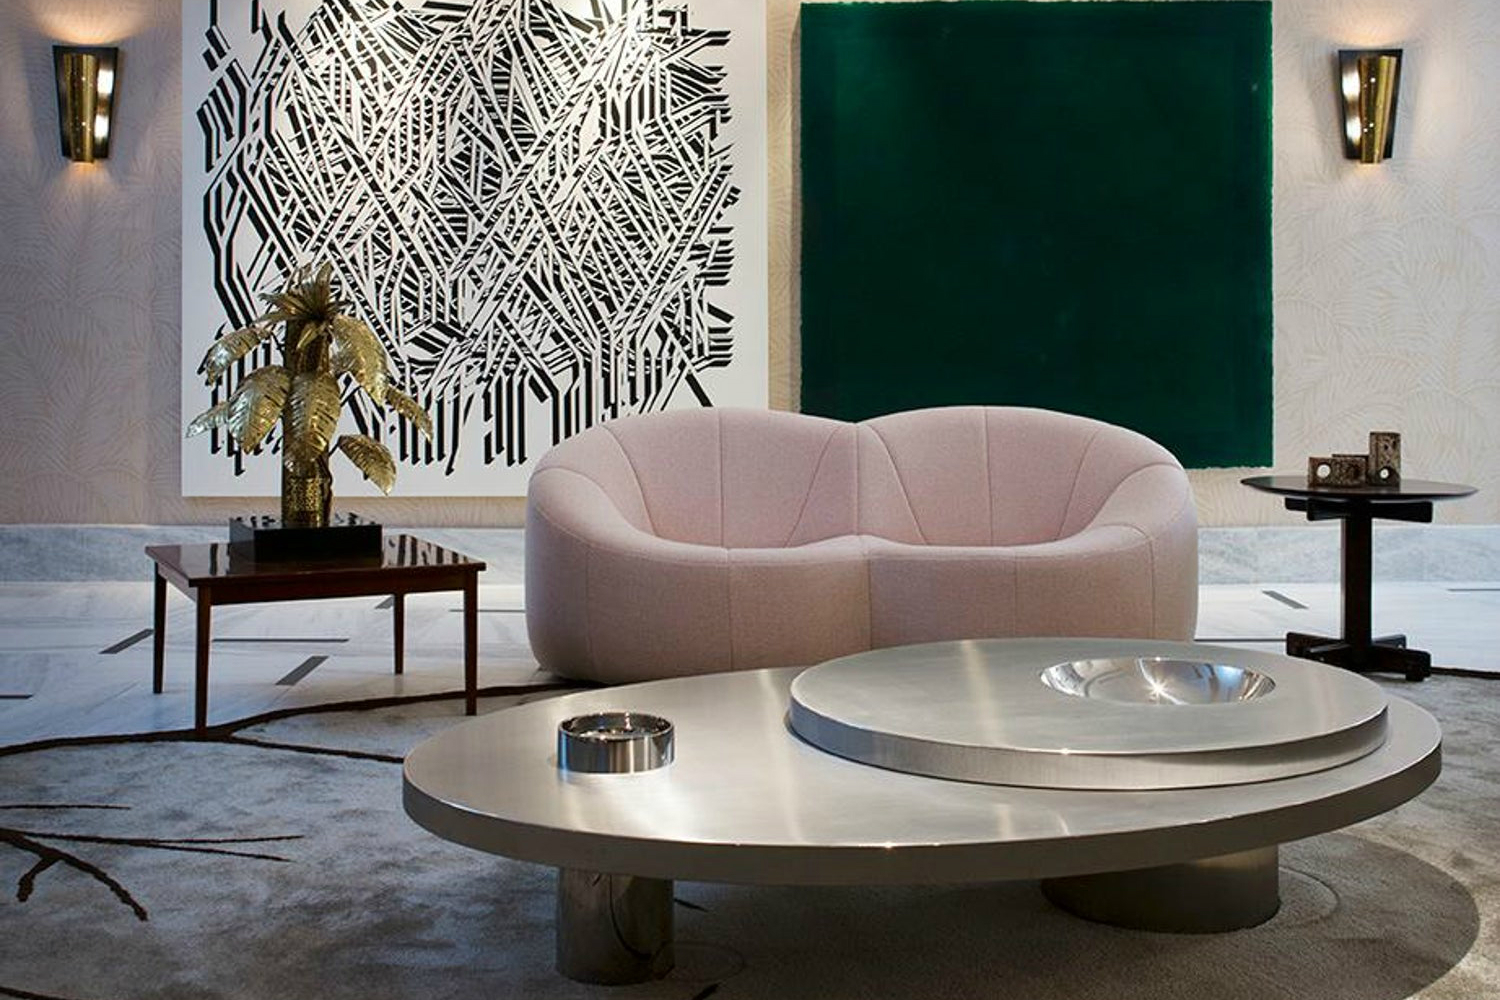 10 Most Expensive Center Tables For Your High Level Home Design,Red Minnie Mouse Icing Cake Design